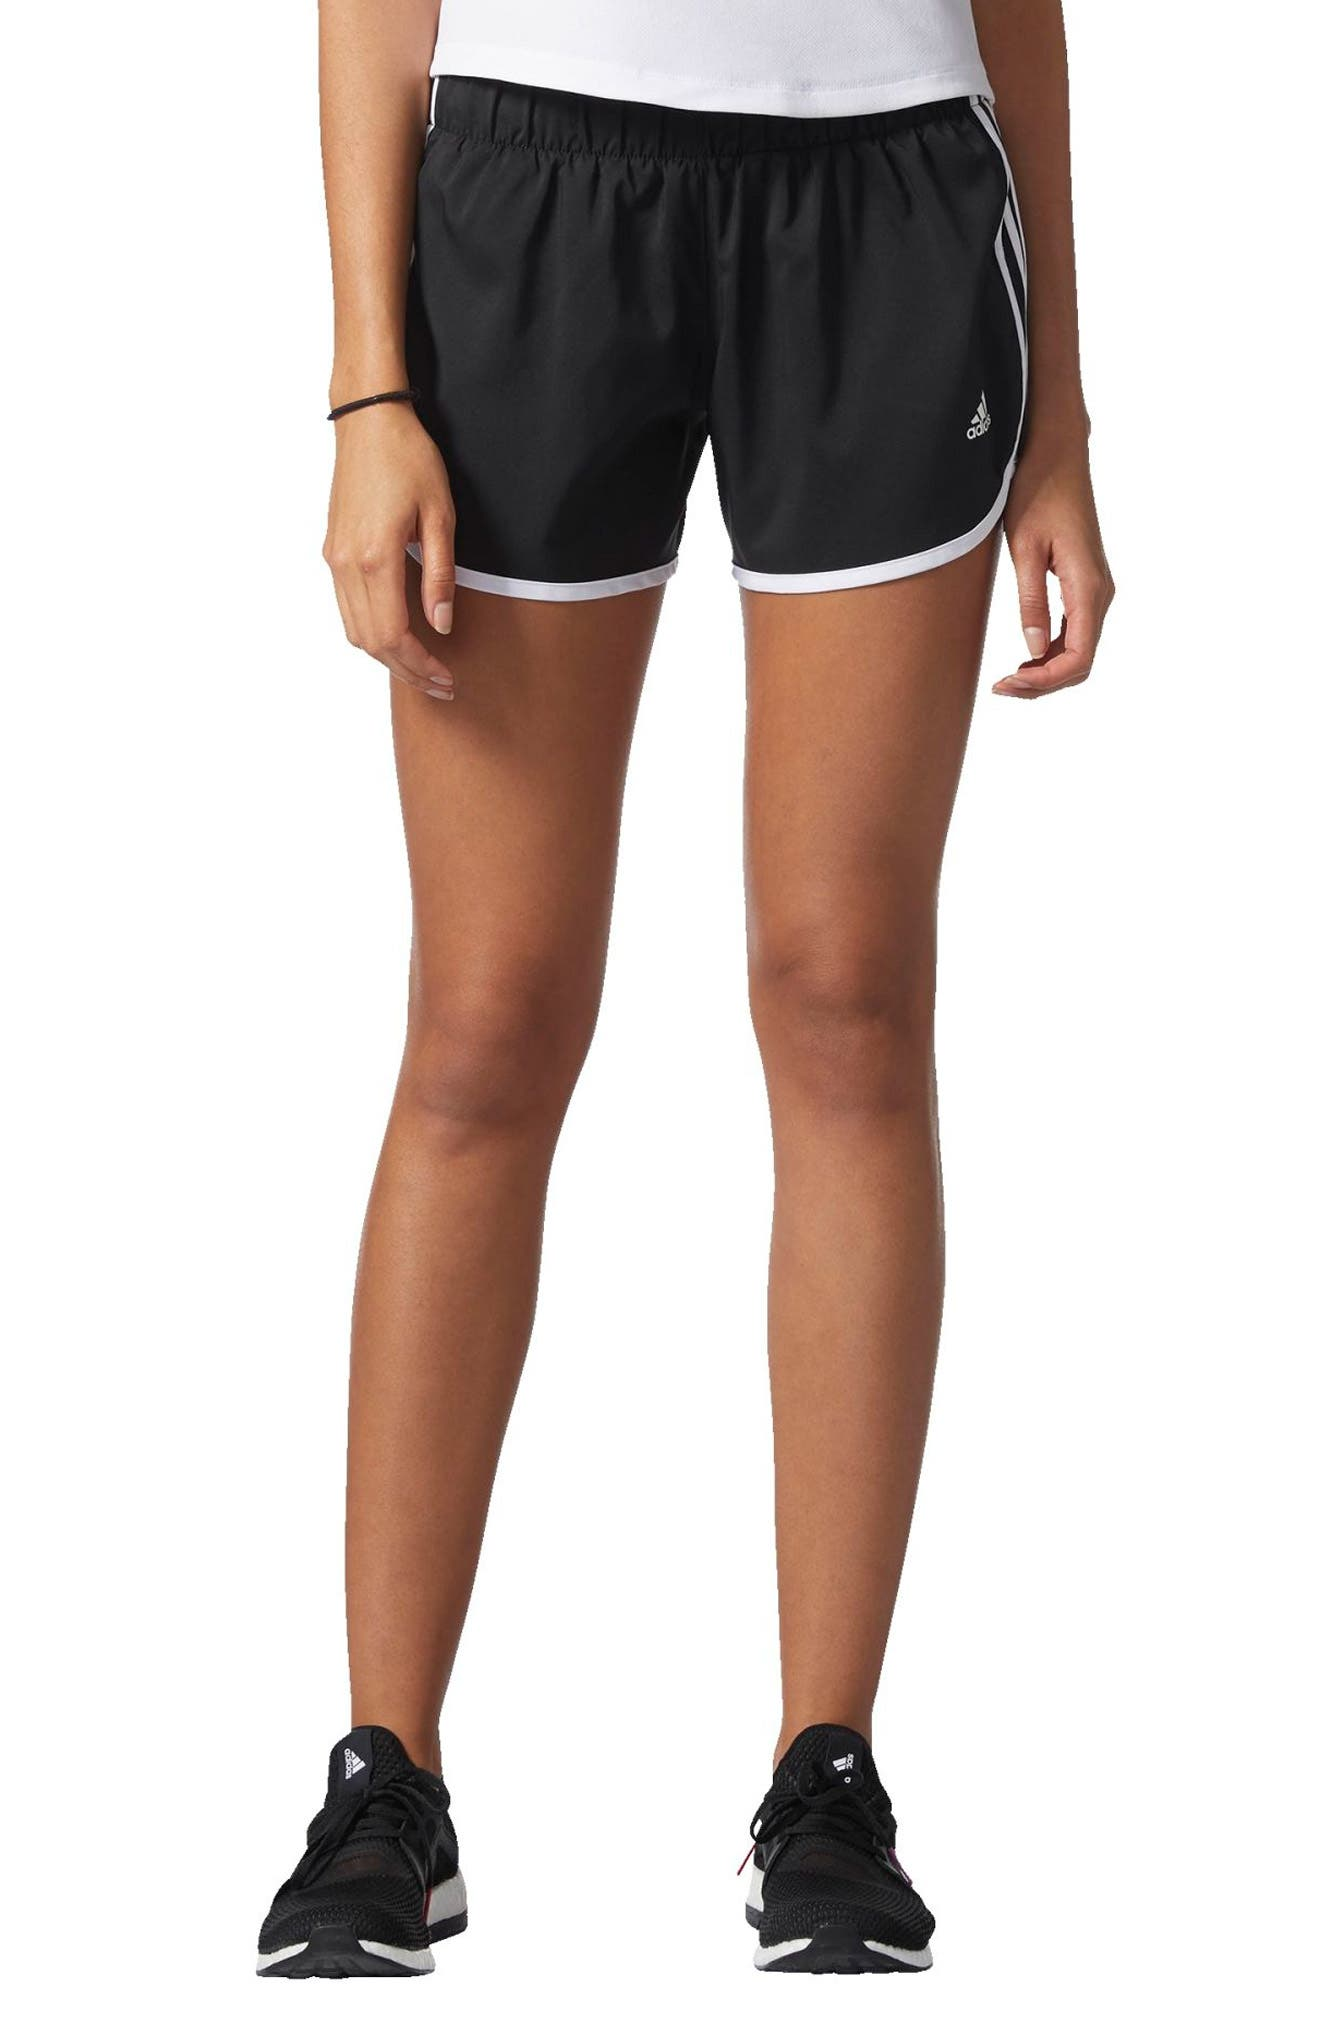 M10 Icon Running Shorts,                         Main,                         color, 001